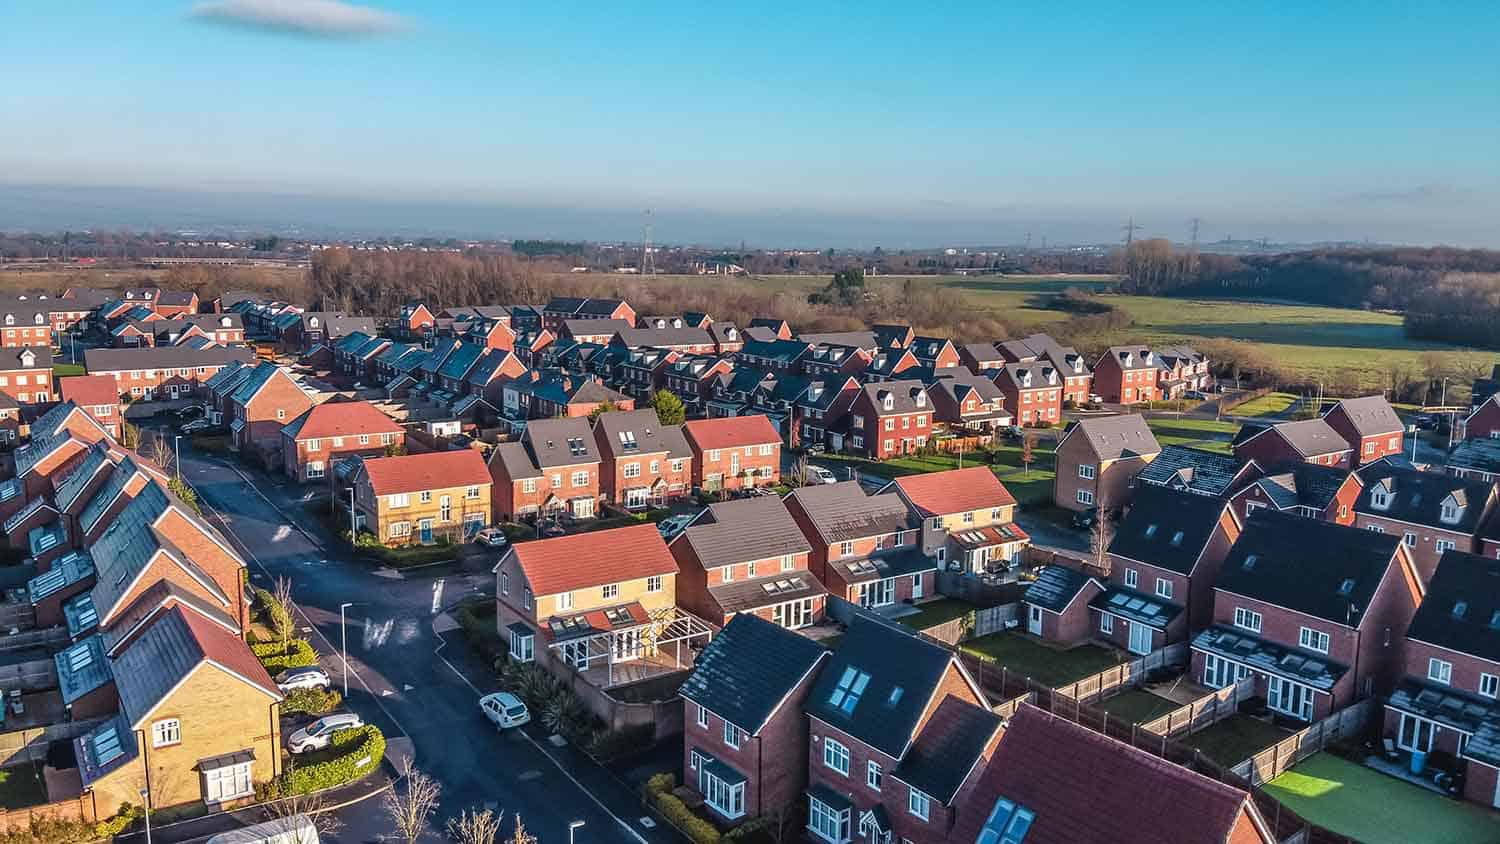 Arial view of new build houses in England